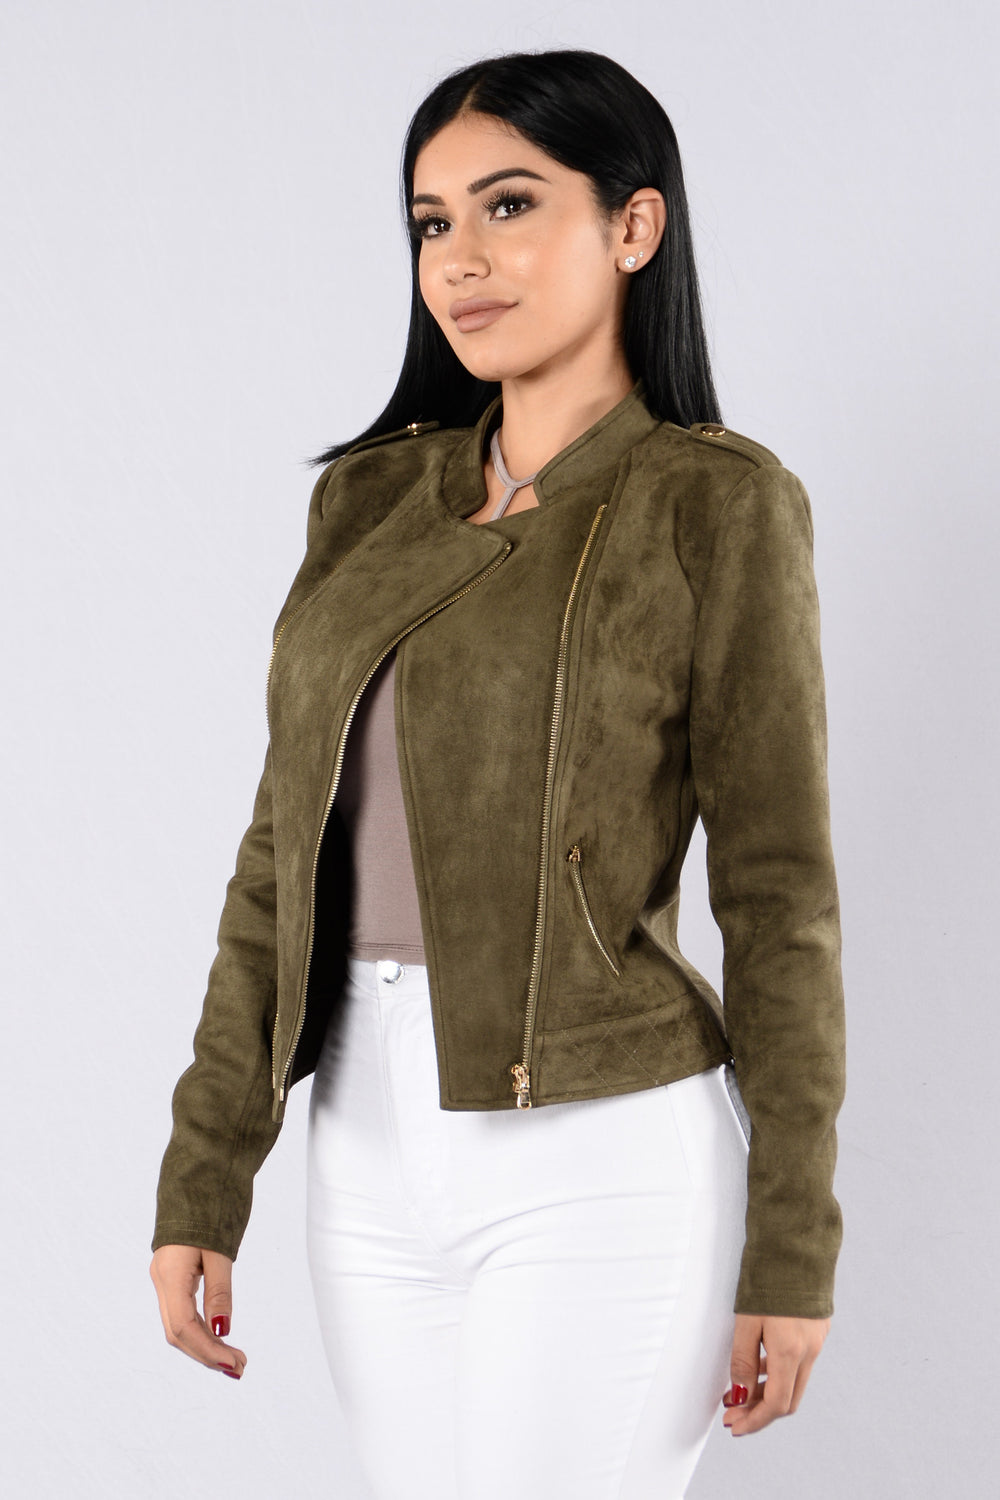 Strayed in Suede Jacket - Olive